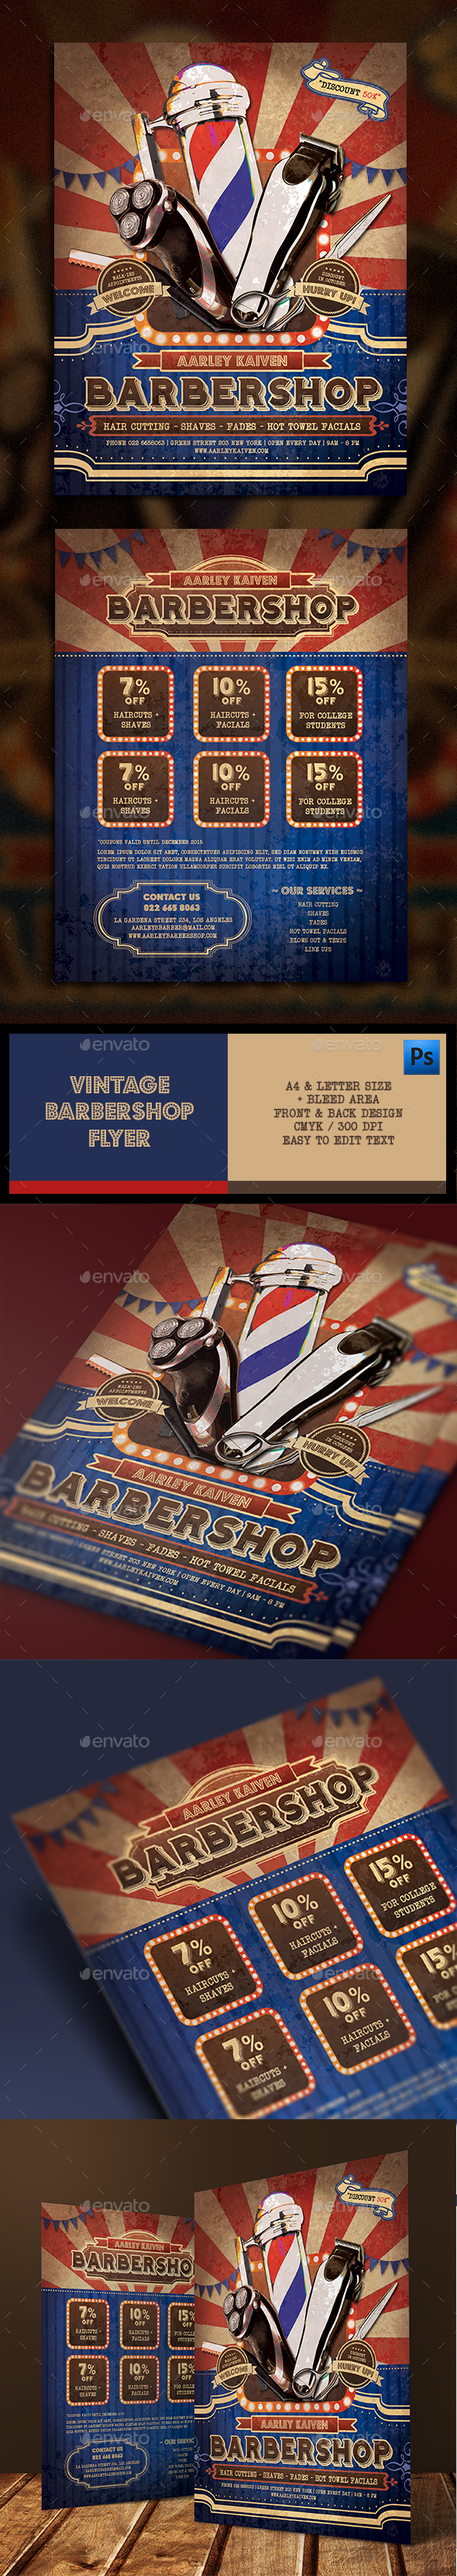 Vintage Barbershop Flyer - Corporate Flyers